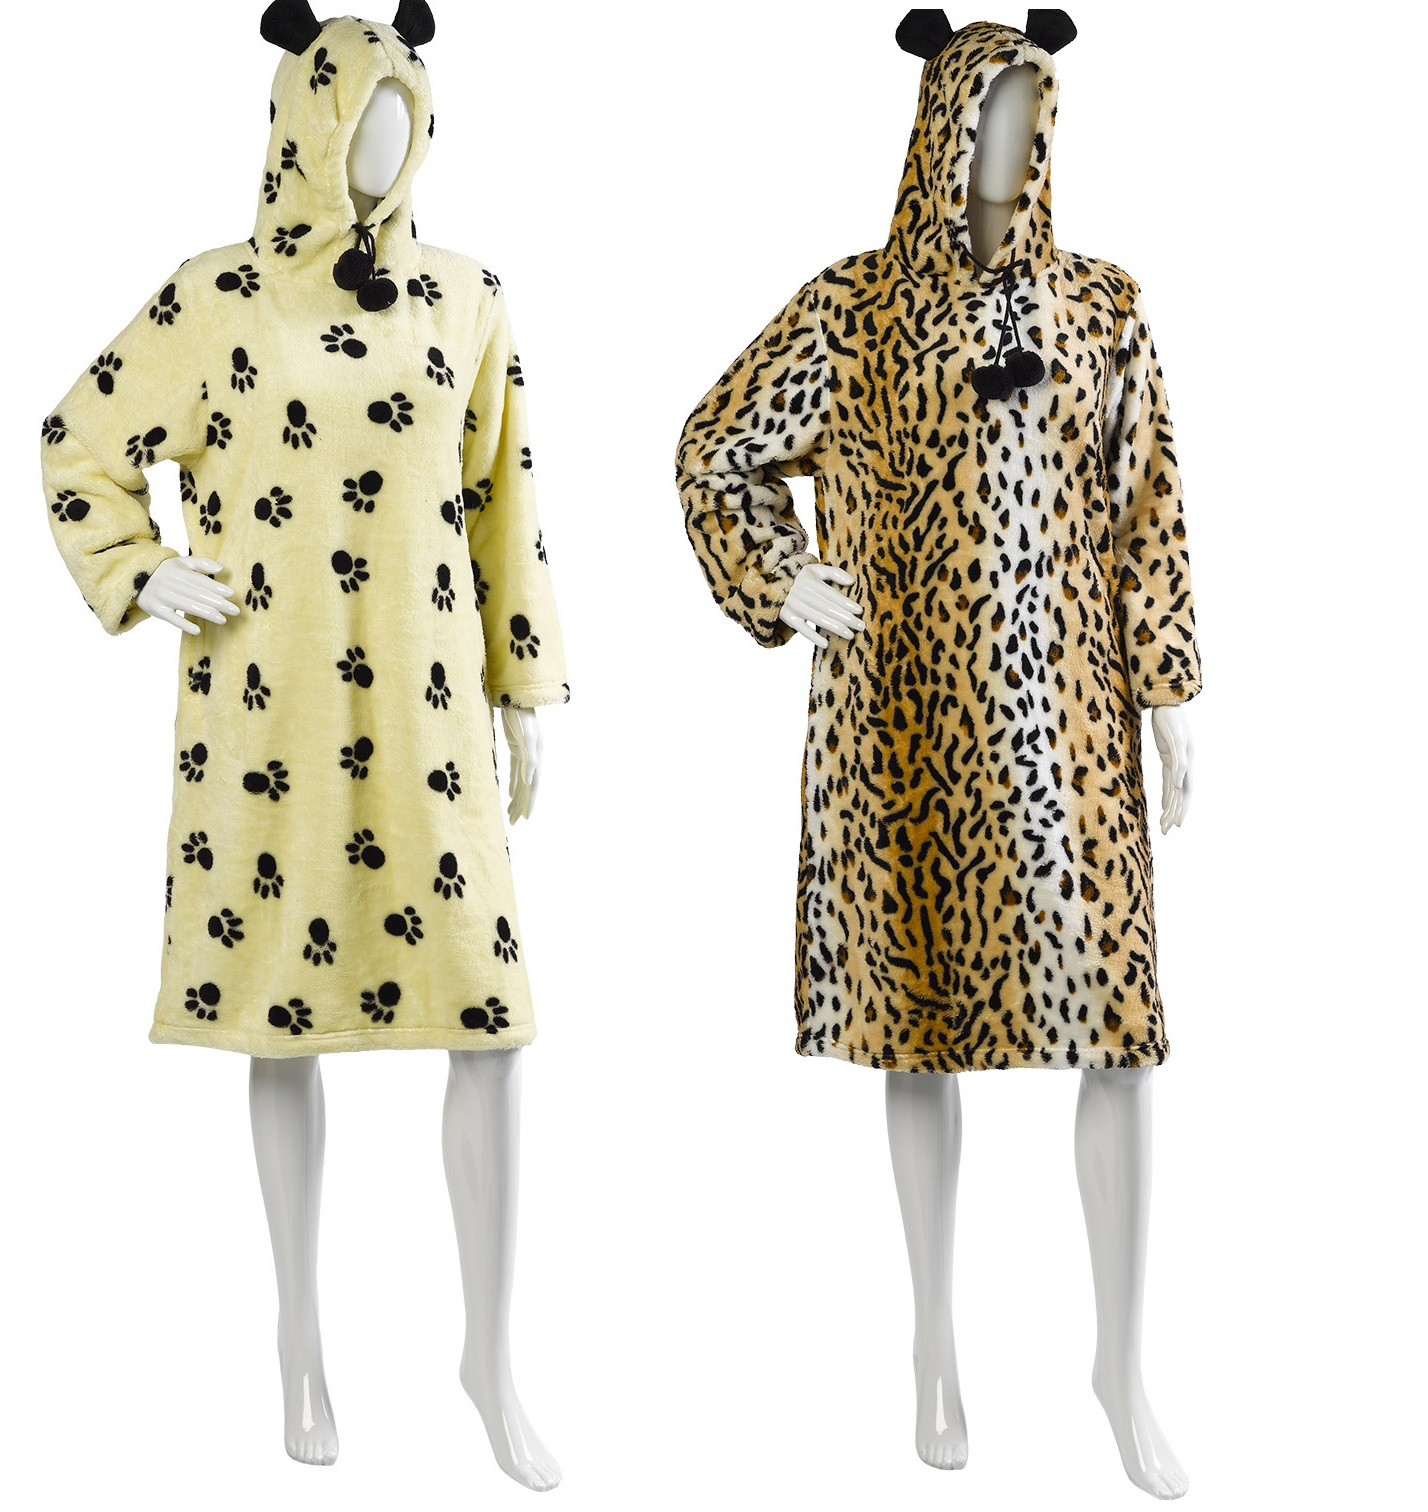 Women's Hooded Bathrobe Plush Robe With Animal Print $ 25 out of 5 stars Turquaz Linen. Cotton Terry Velour Polka Dot and Animal Print Spa, Bath, Pool, Gym Towel Body Wrap with Adjustable Velcro $ 19 out of 5 stars 7. Casual Moments. Women's 39 Inch Shawl Collar Leopard Wrap.